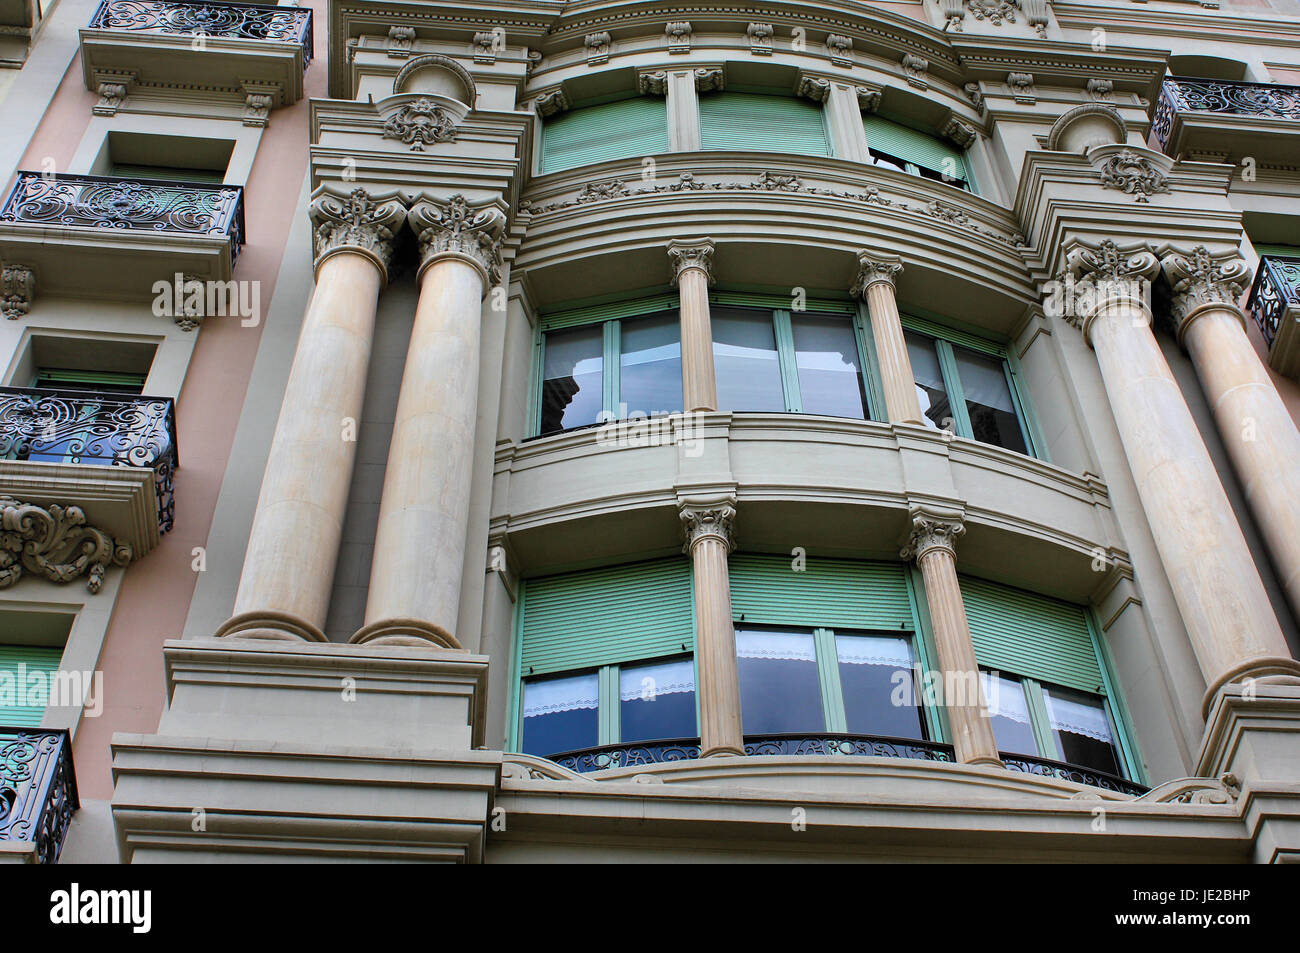 neoclassicism in barcelona - Stock Image